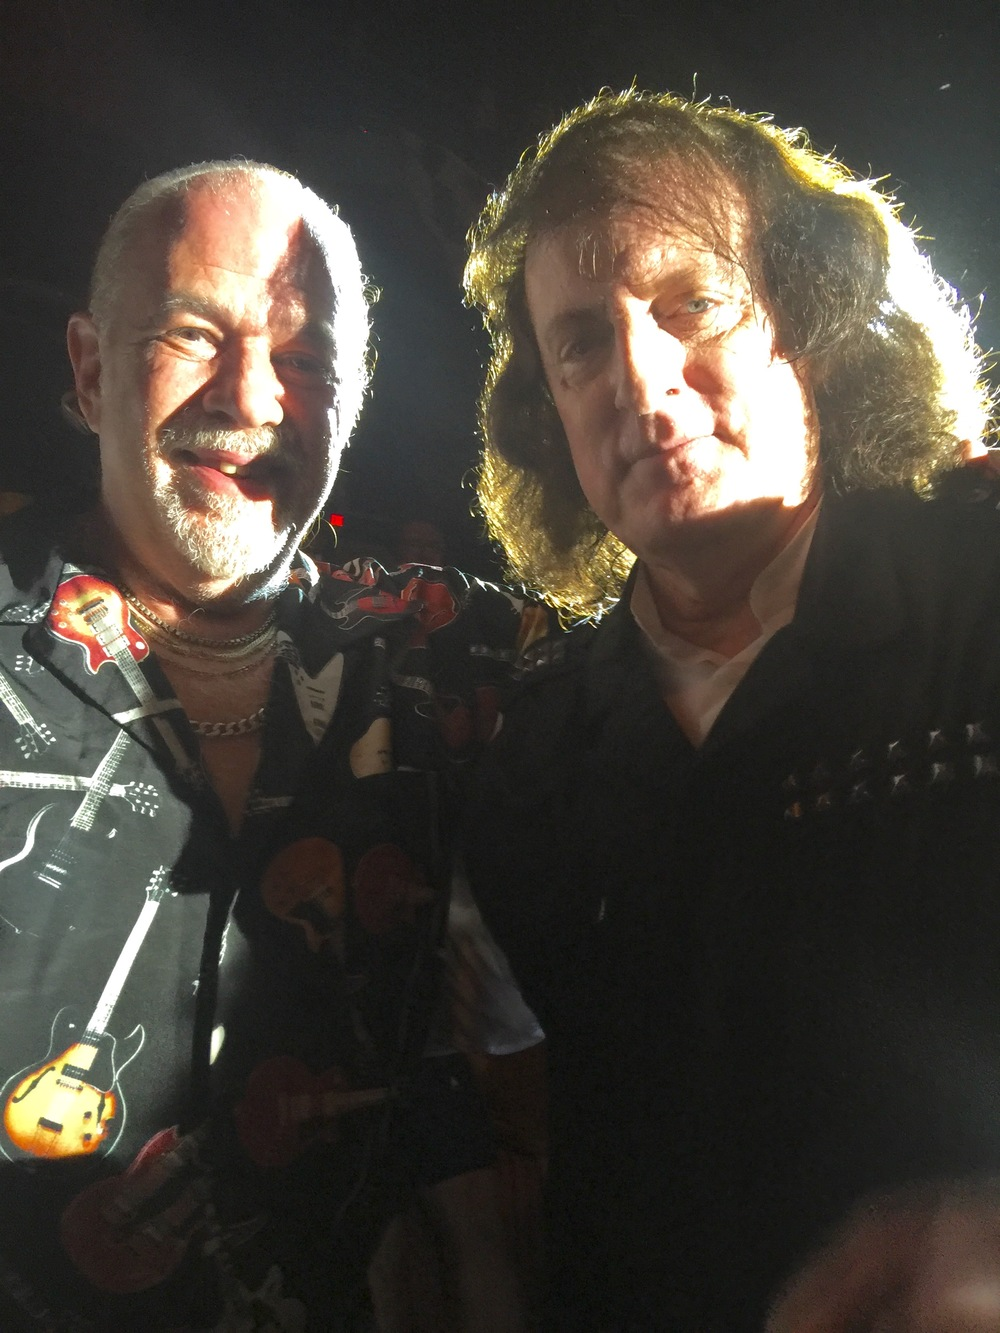 The owner of EZ2collect, Irv Lukin, meets legendary musician Tommy James during his concert at the Great Auditorium in Ocean Grove, NJ